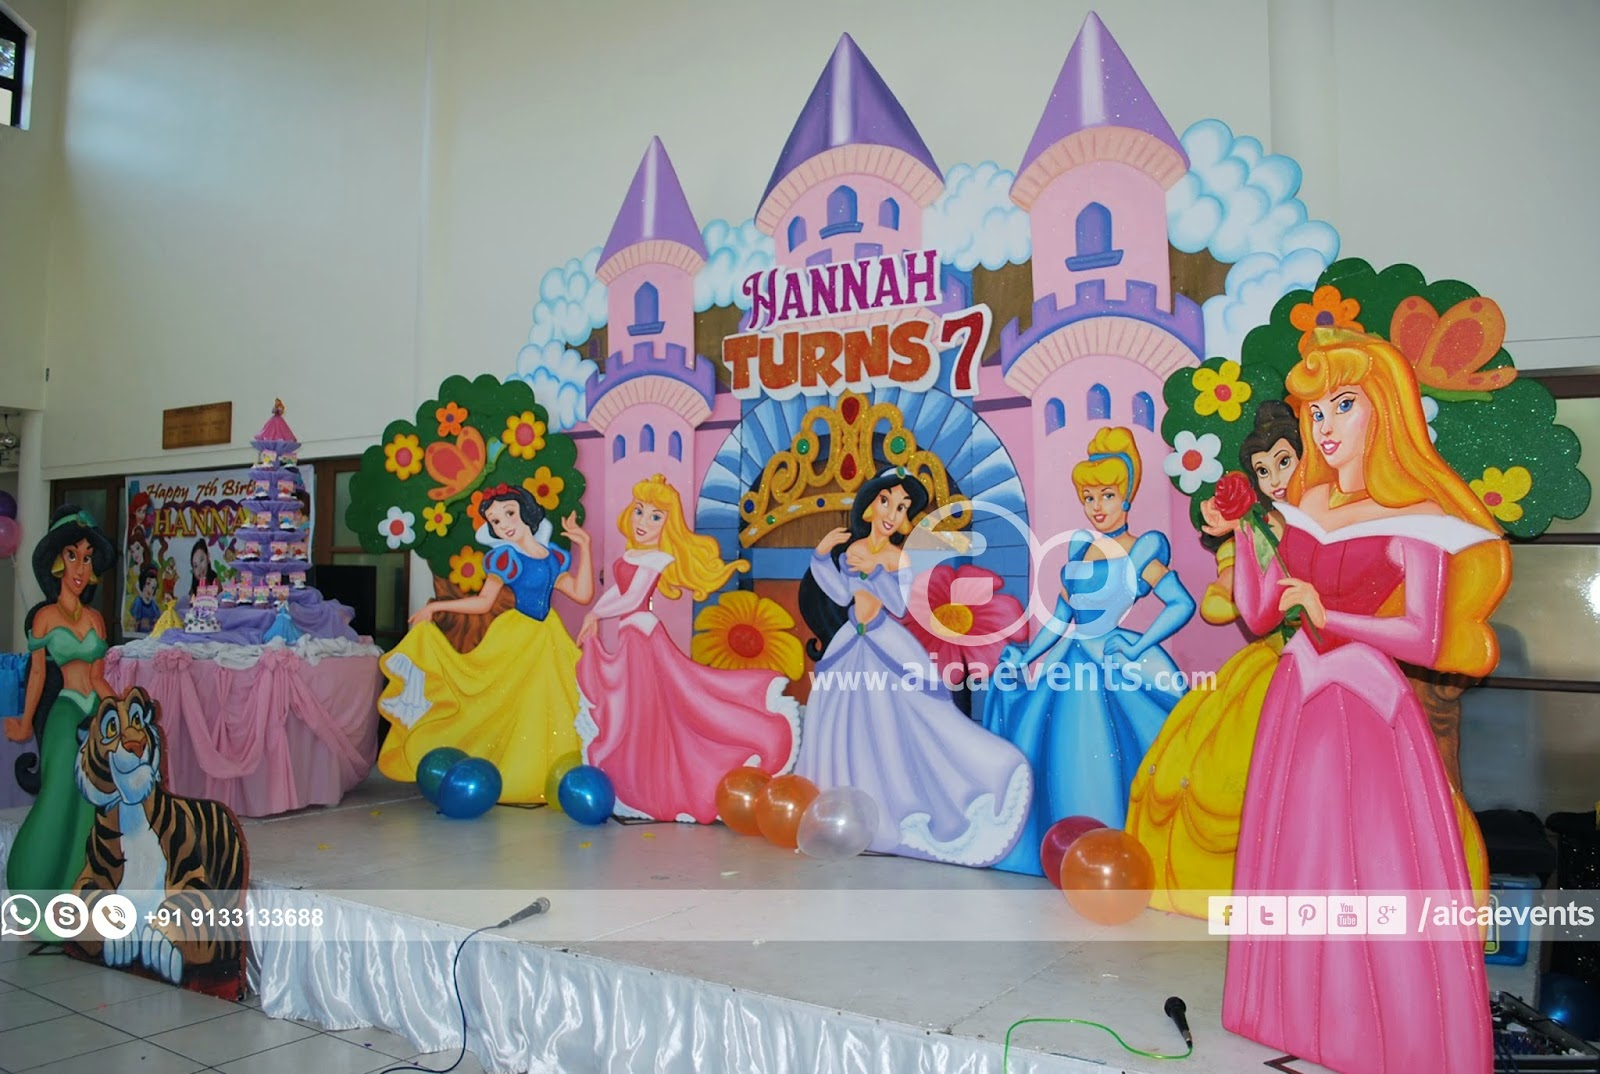 Princess themed Birthday party & Aicaevents India: Princess themed Birthday party